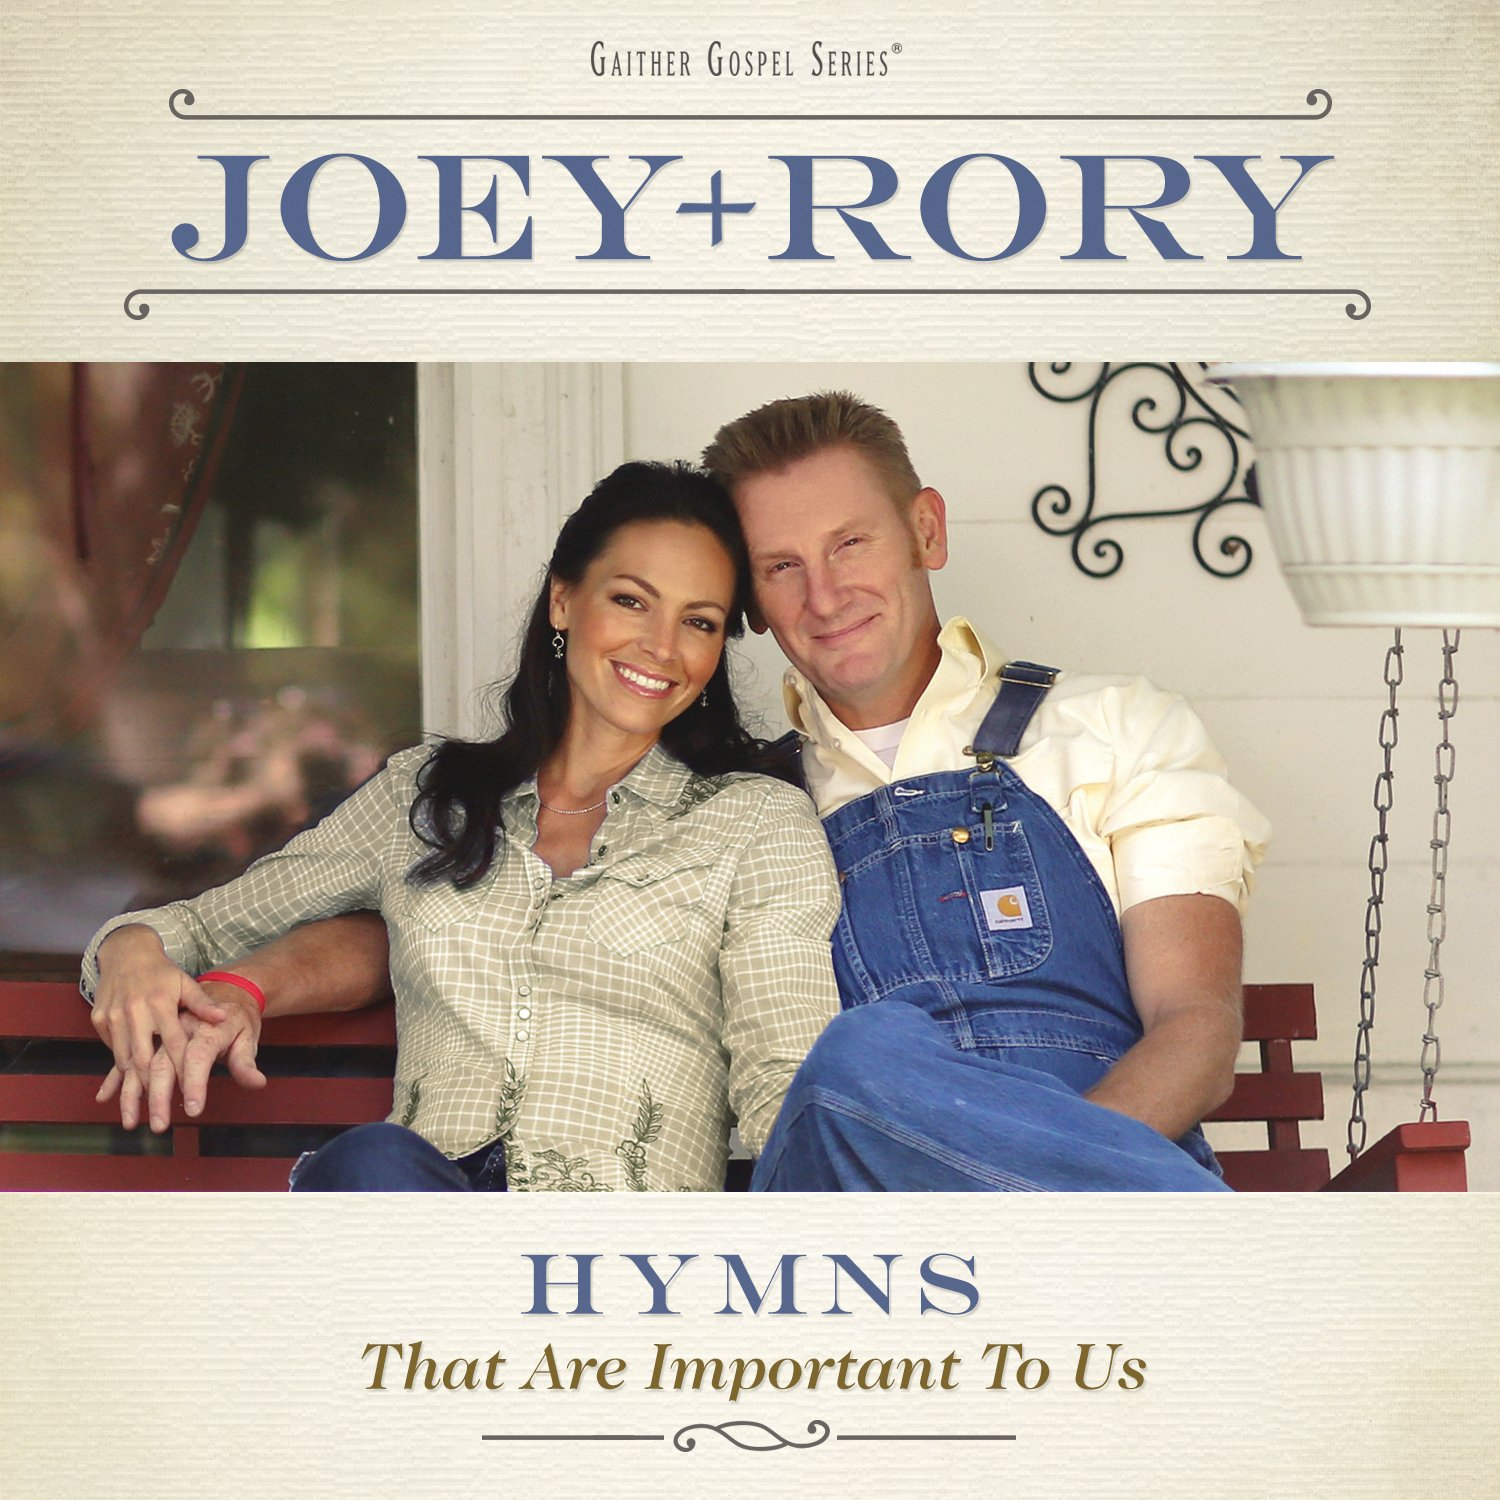 Joey+Rory - Hymns That Are Important To Us - Amazon.com Music